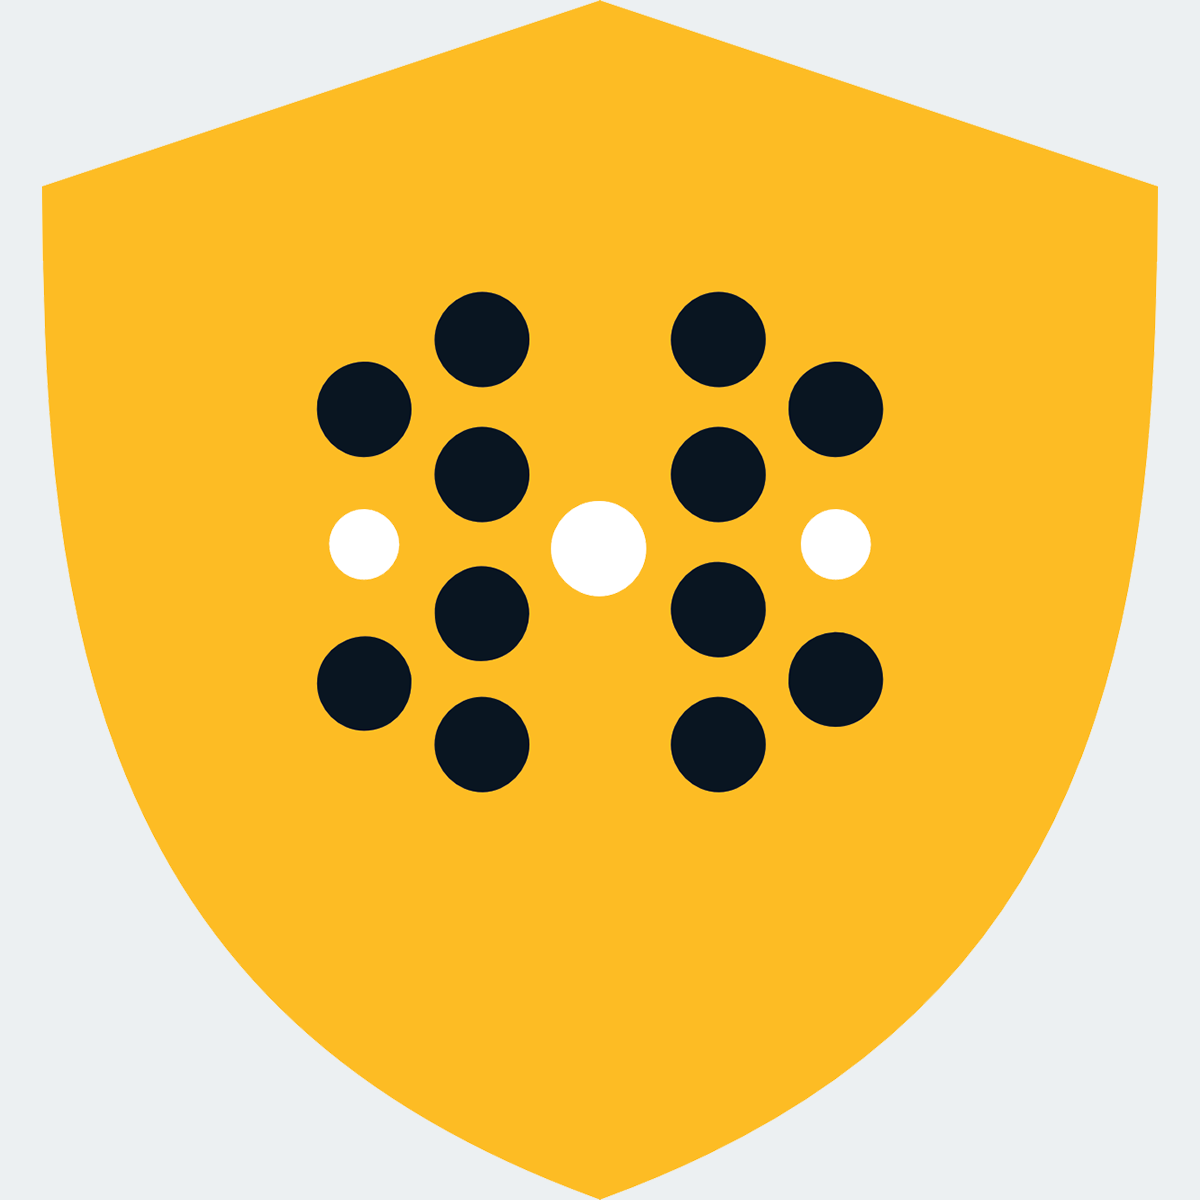 Shopify Store Protector app by Human presence technology